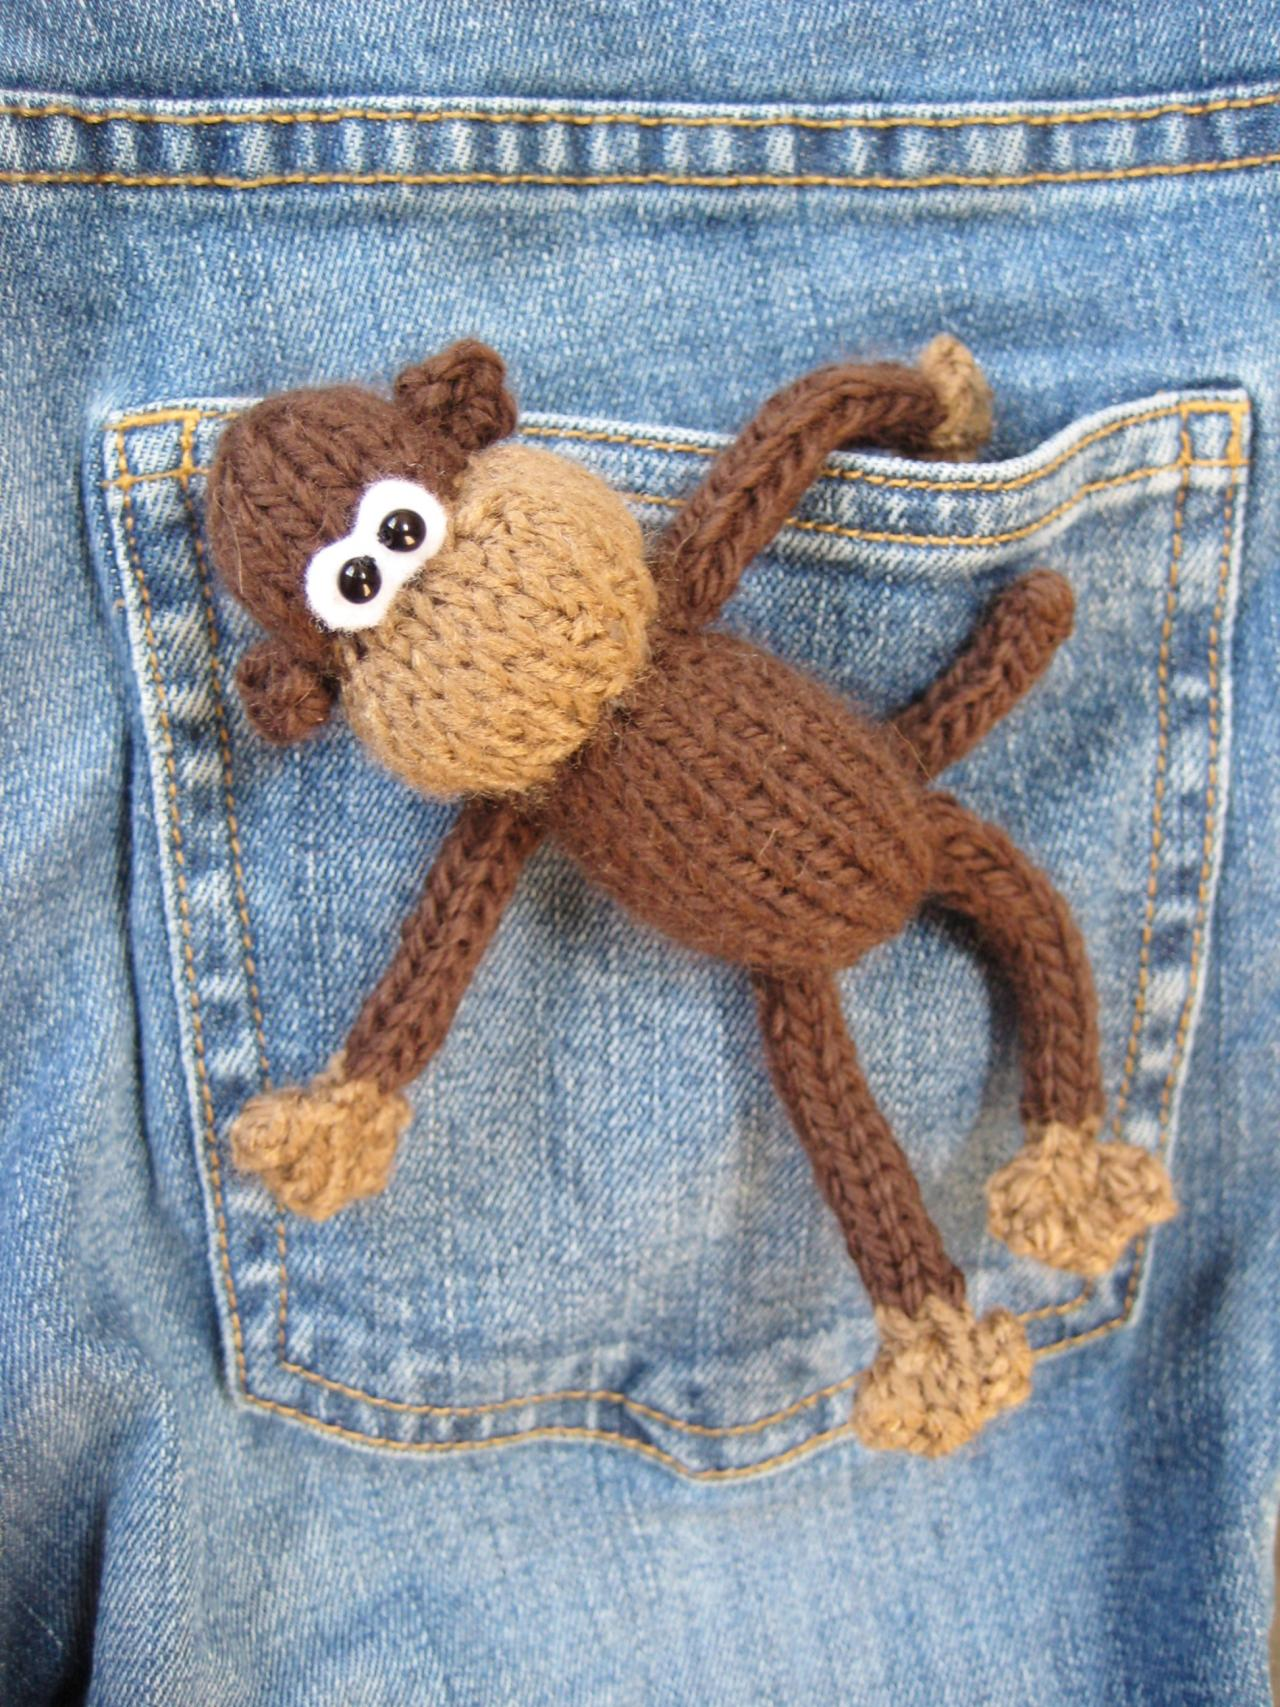 Photos of Pocket Monkey Toy Knitting Pattern